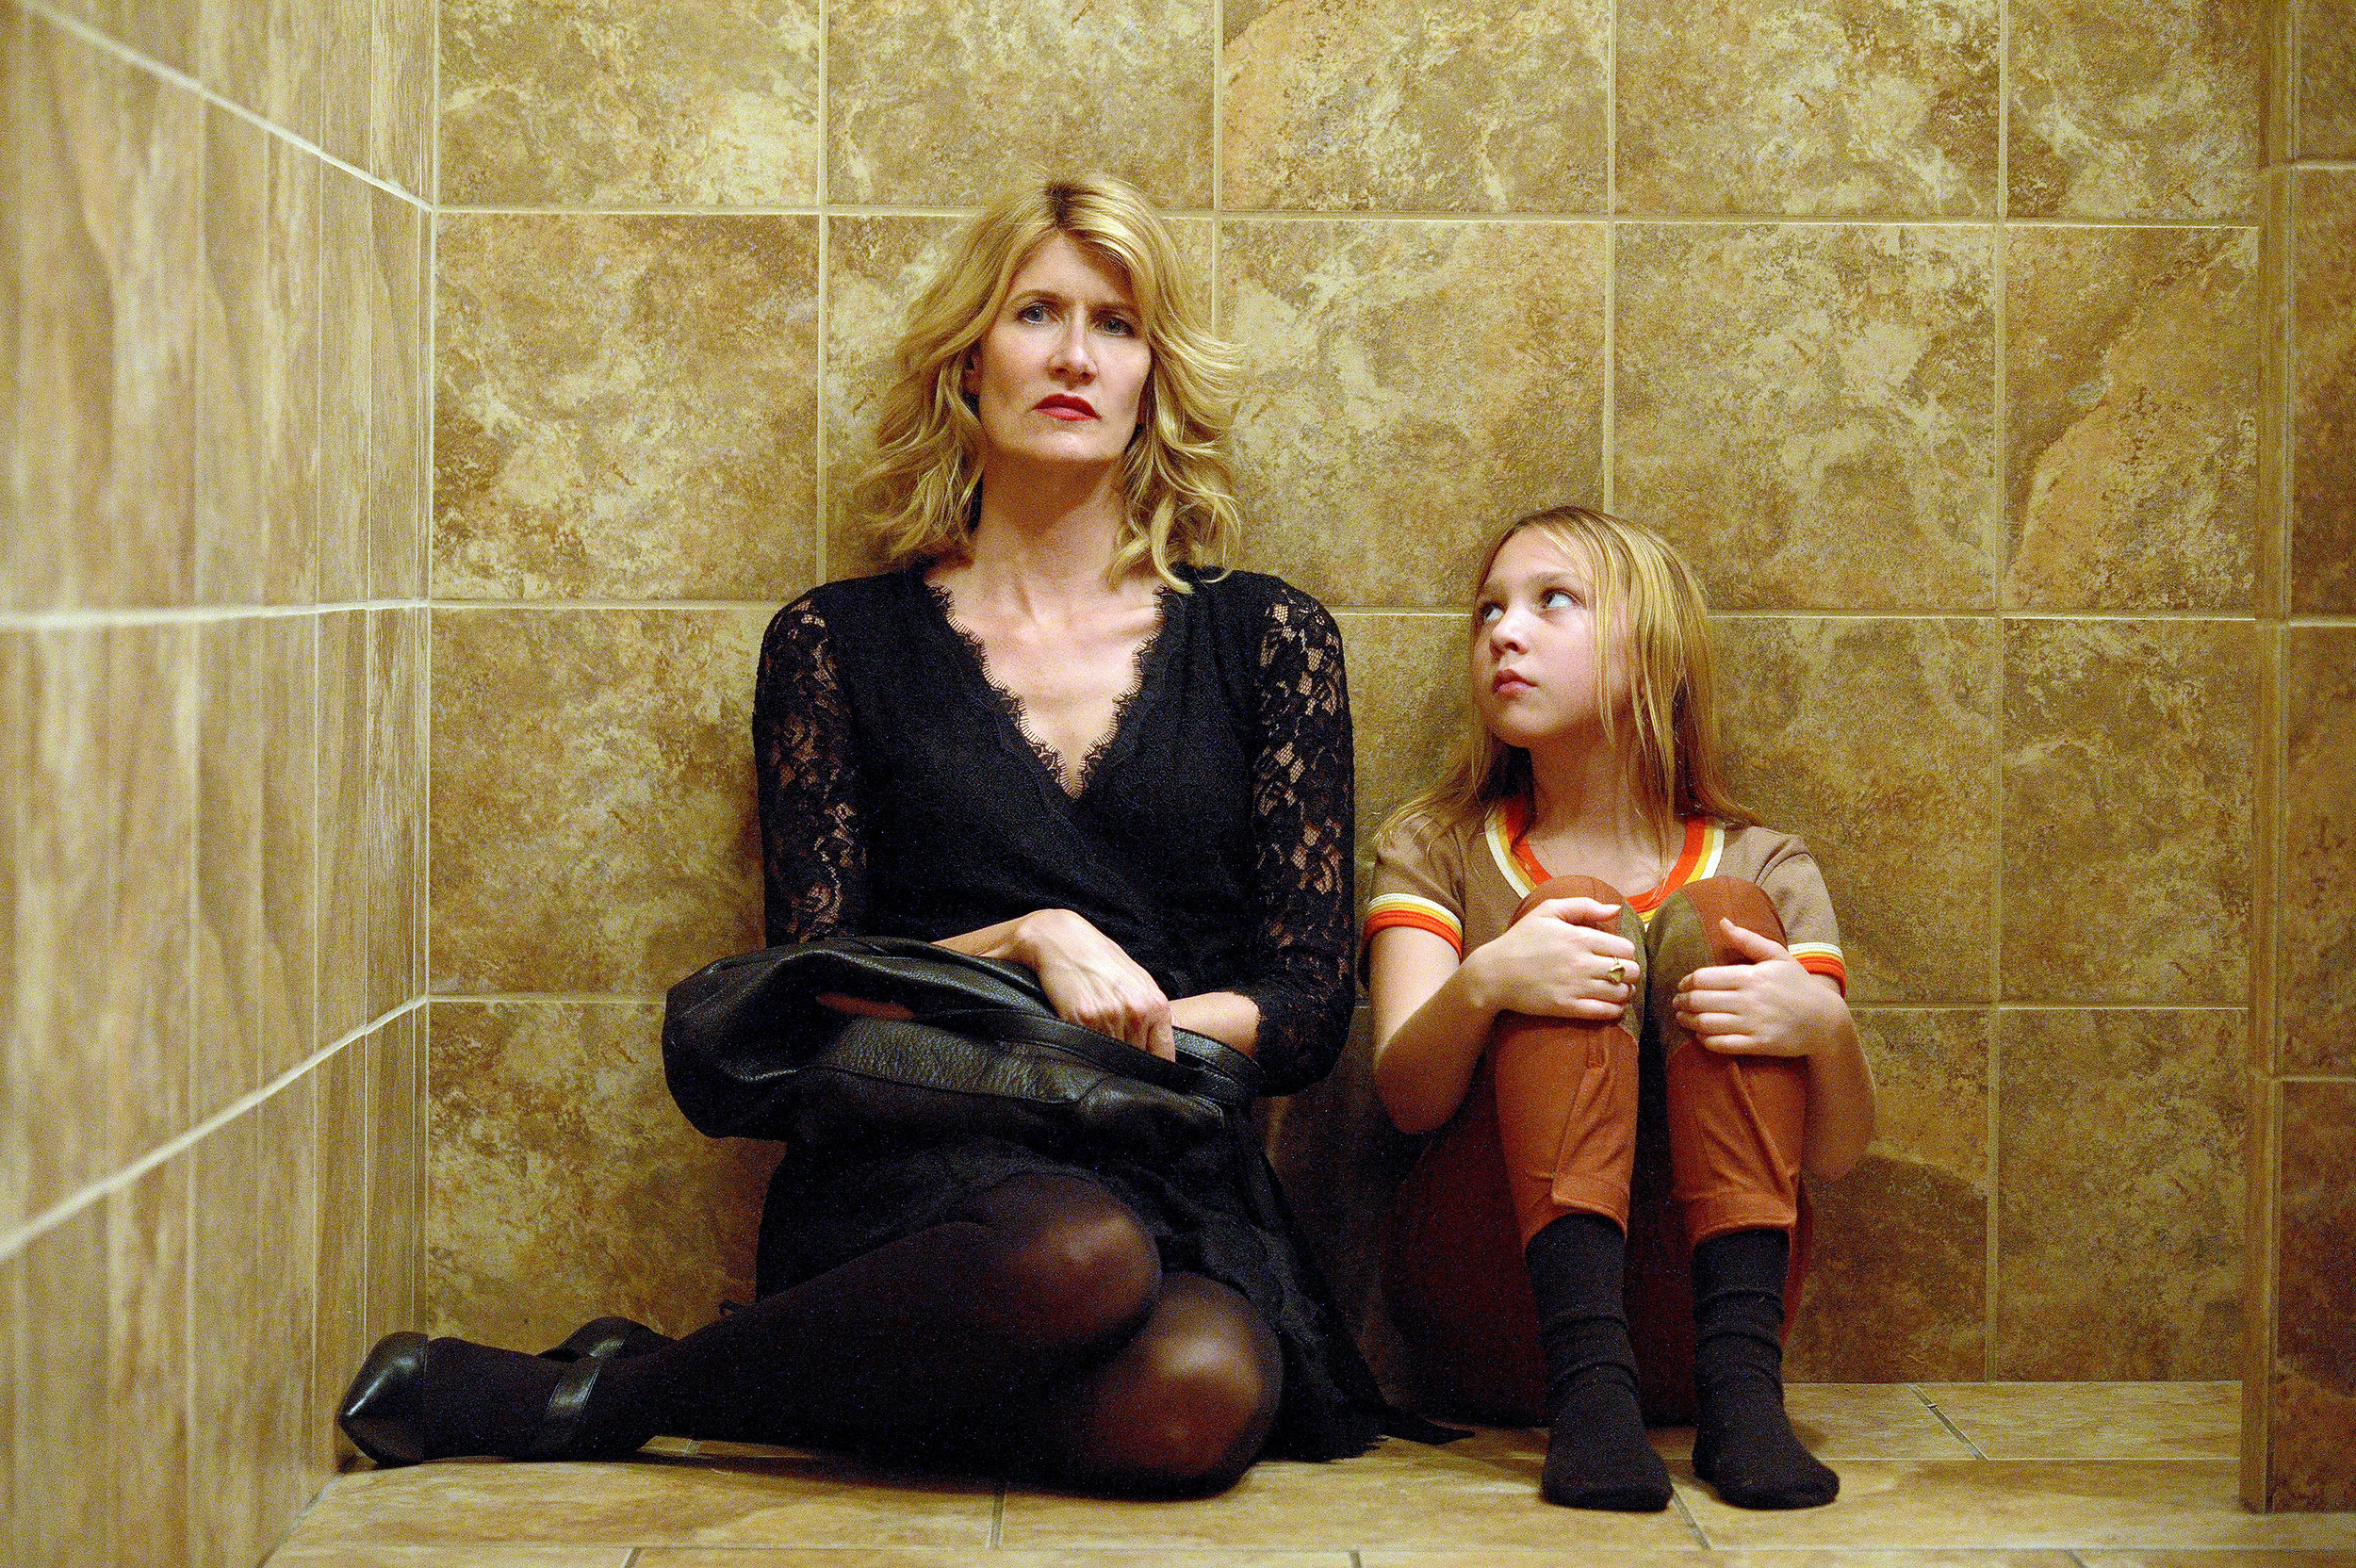 Laura Dern plays Jen Fox,, trying to come to terms with the experiences her younger self suffered. CREDIT: HBO